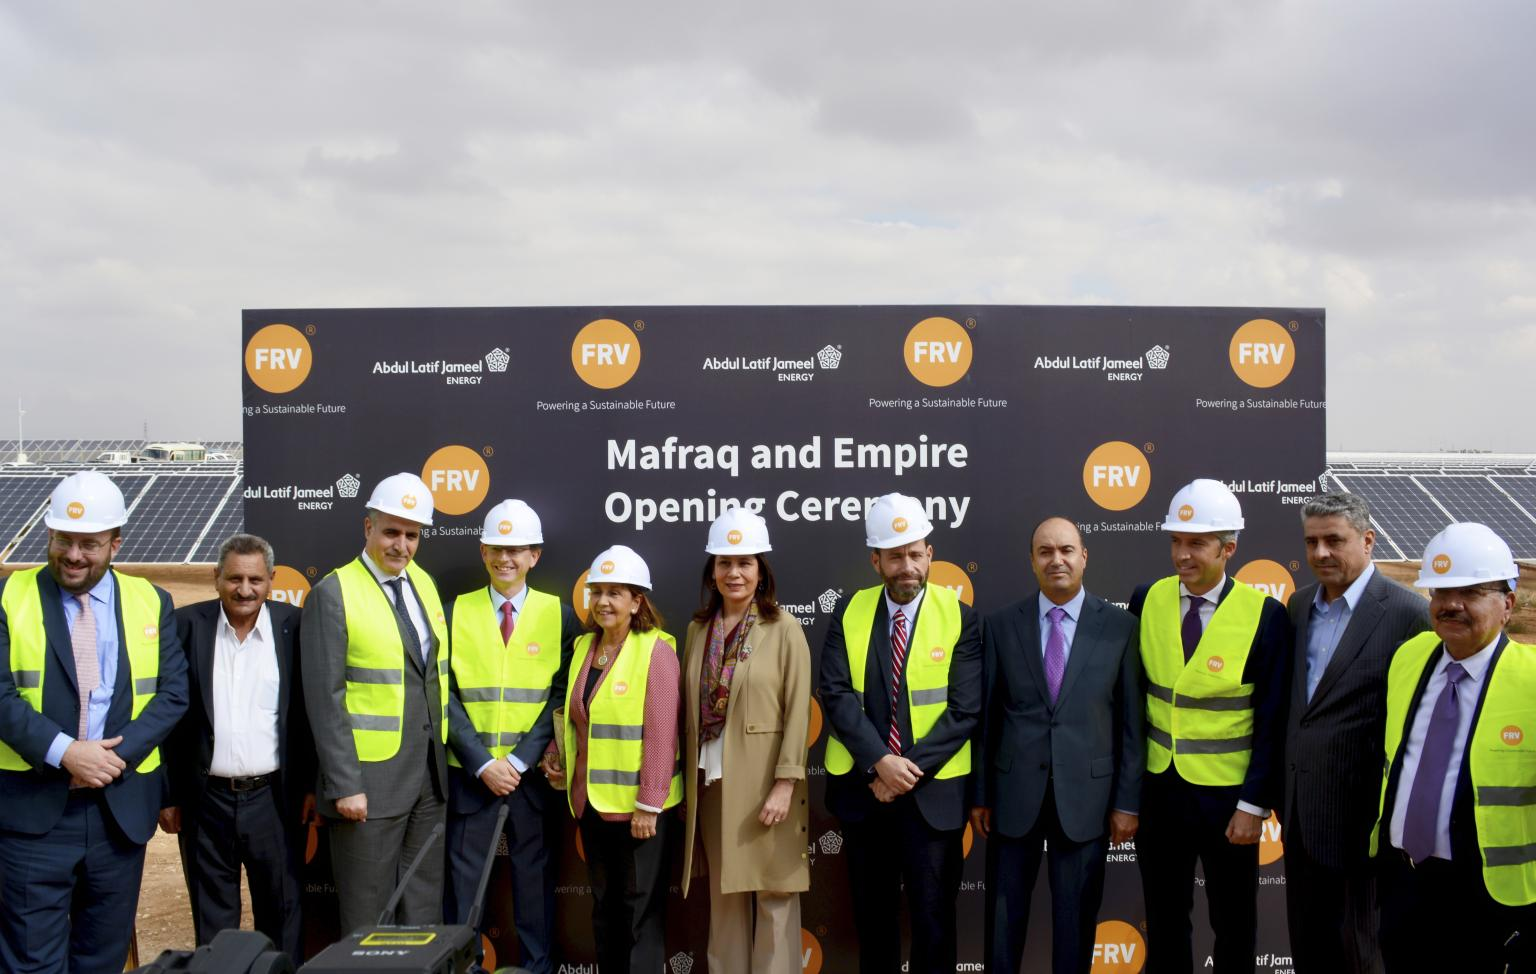 Photo call at the inauguration ceremony for Mafraq I and Empire PV plants. Source: FRV, LinkedIn